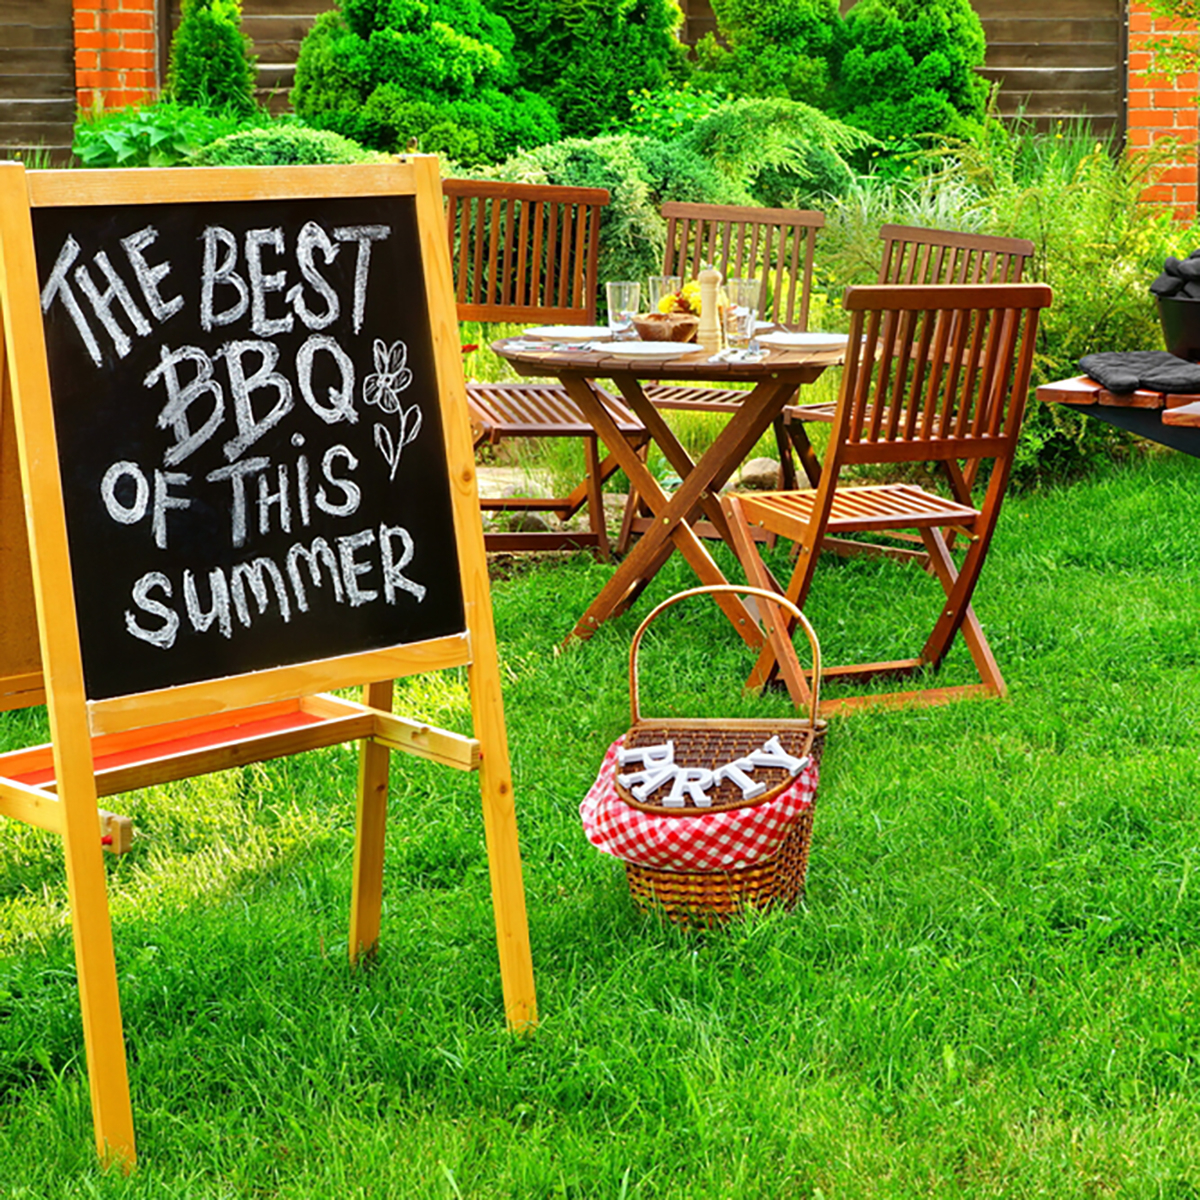 11 Insanely Smart Ideas For Your Backyard Party Taste Of Home inside 11 Smart Ideas How to Build Backyard Ideas For Summer